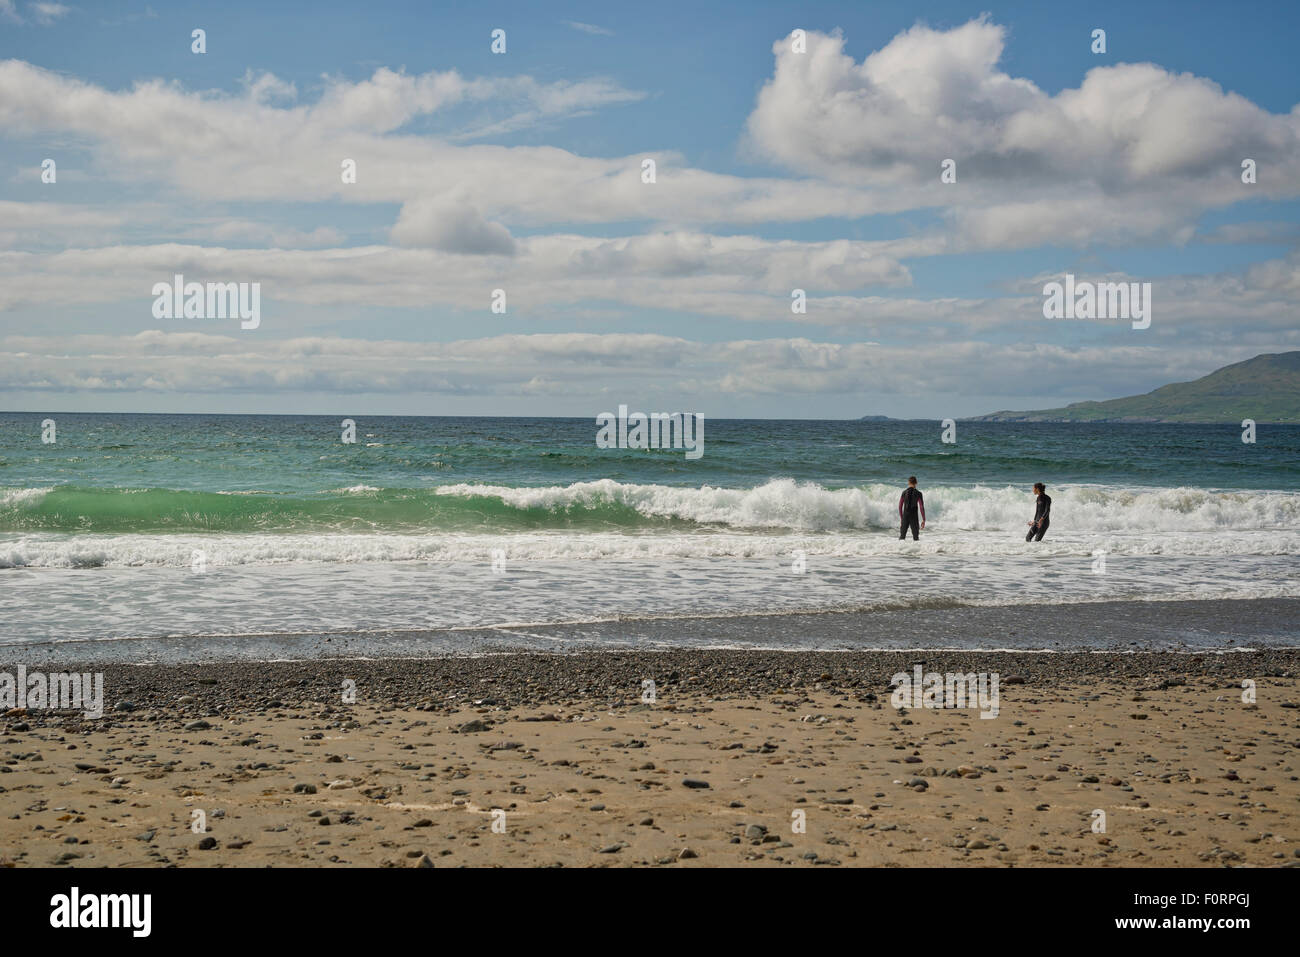 Surf instructors standing in the sea in wet suits - Stock Image